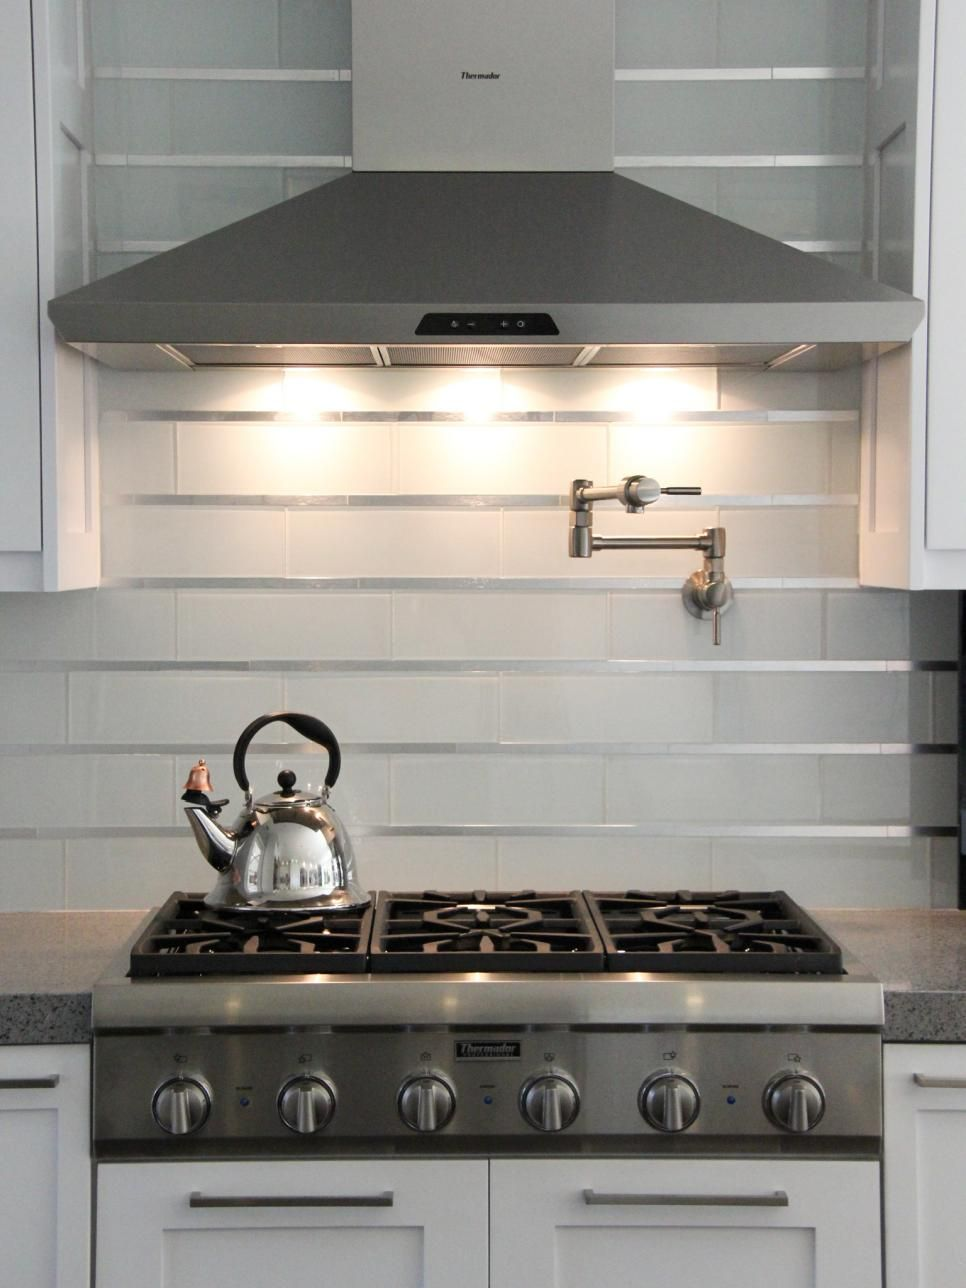 20 stainless steel kitchen backsplashes subway tiles for Buy kitchen backsplash